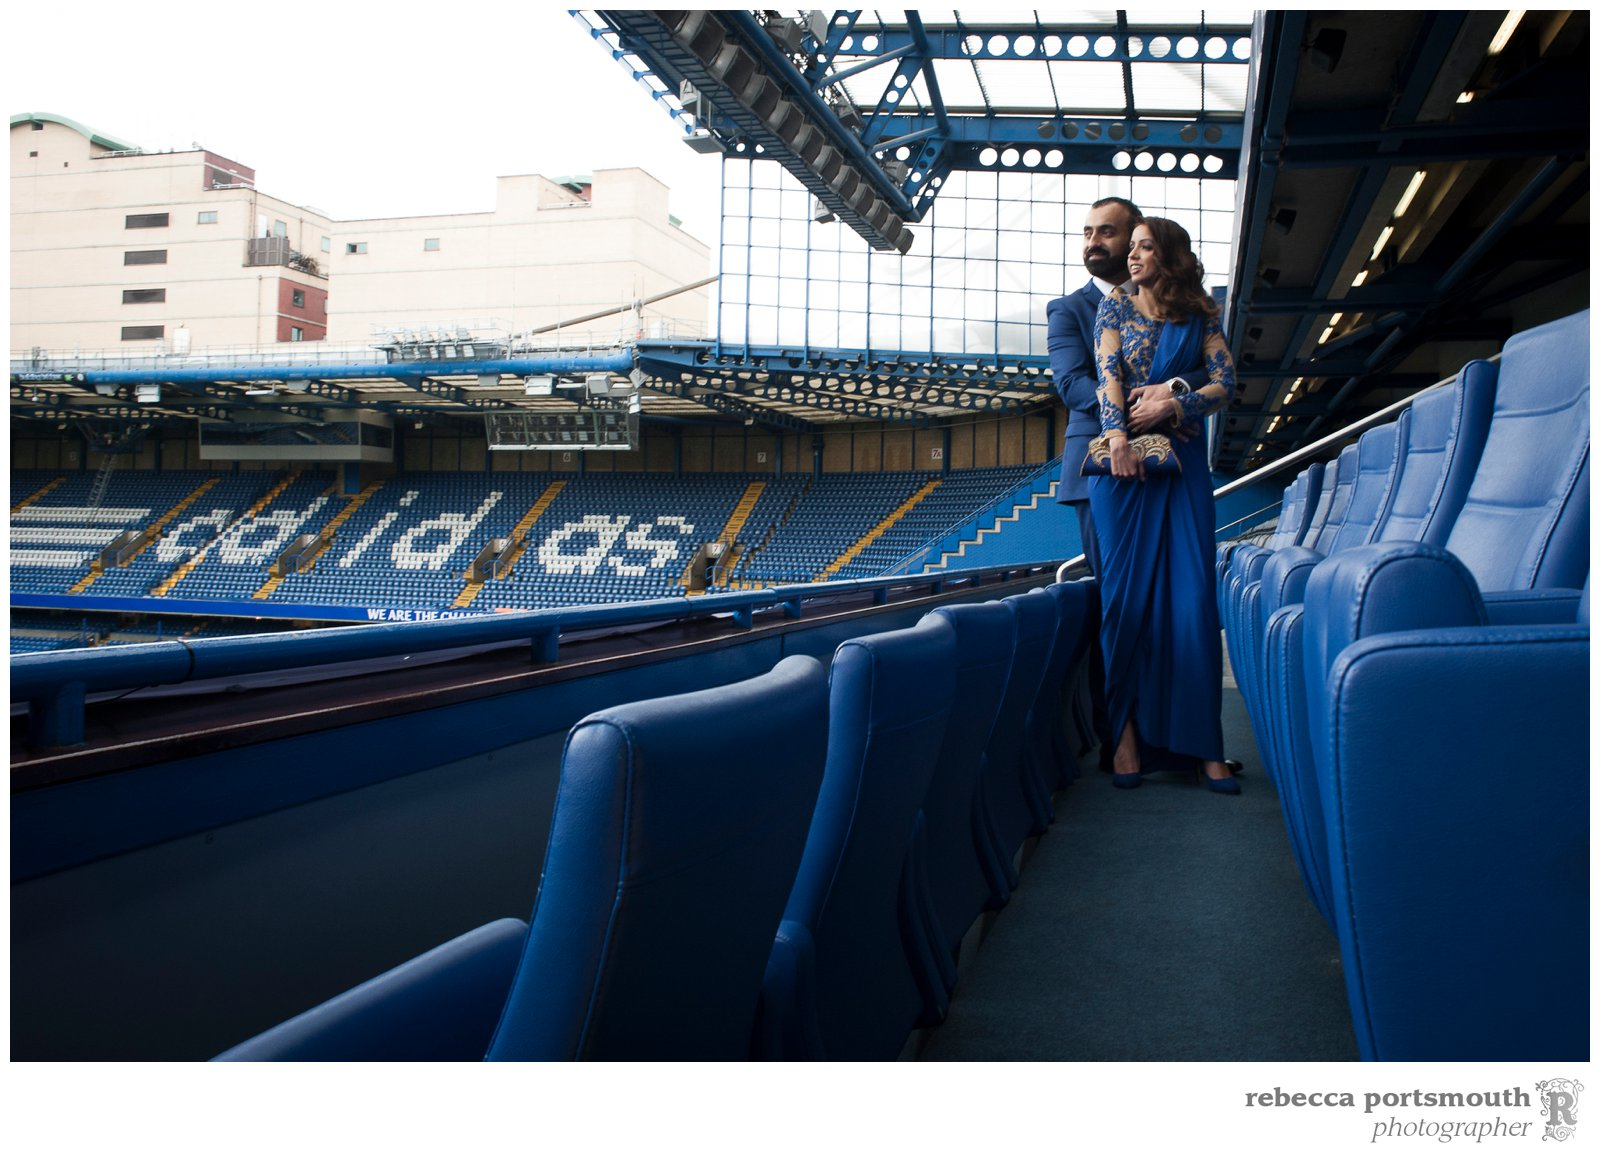 Chelsea Football Club wedding portraits of the bride and groom in the stands overlooking the grounds.